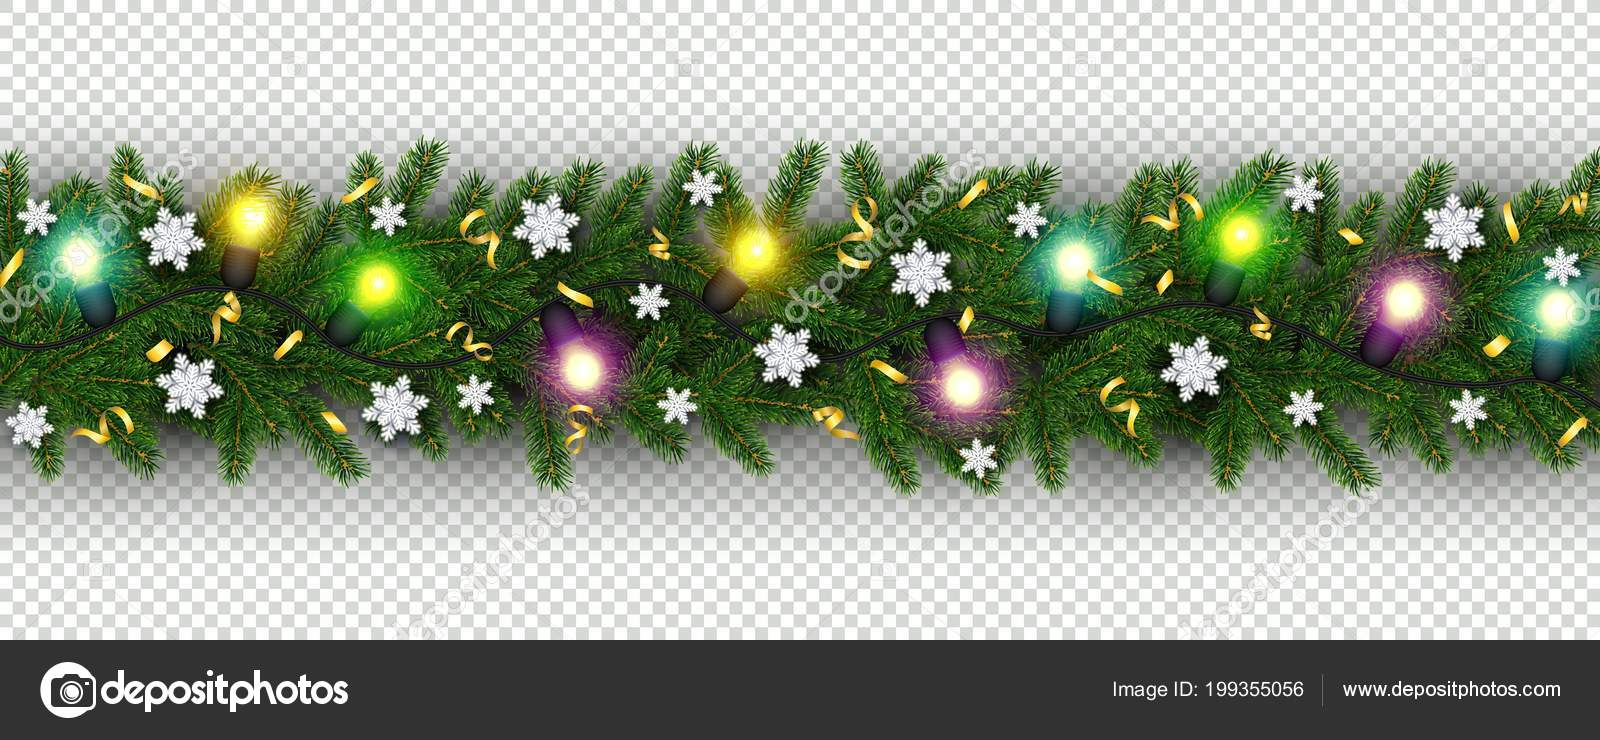 christmas and new year border of realistic branches of christmas tree garland snowflake serpentine element for festive design isolated on transparent